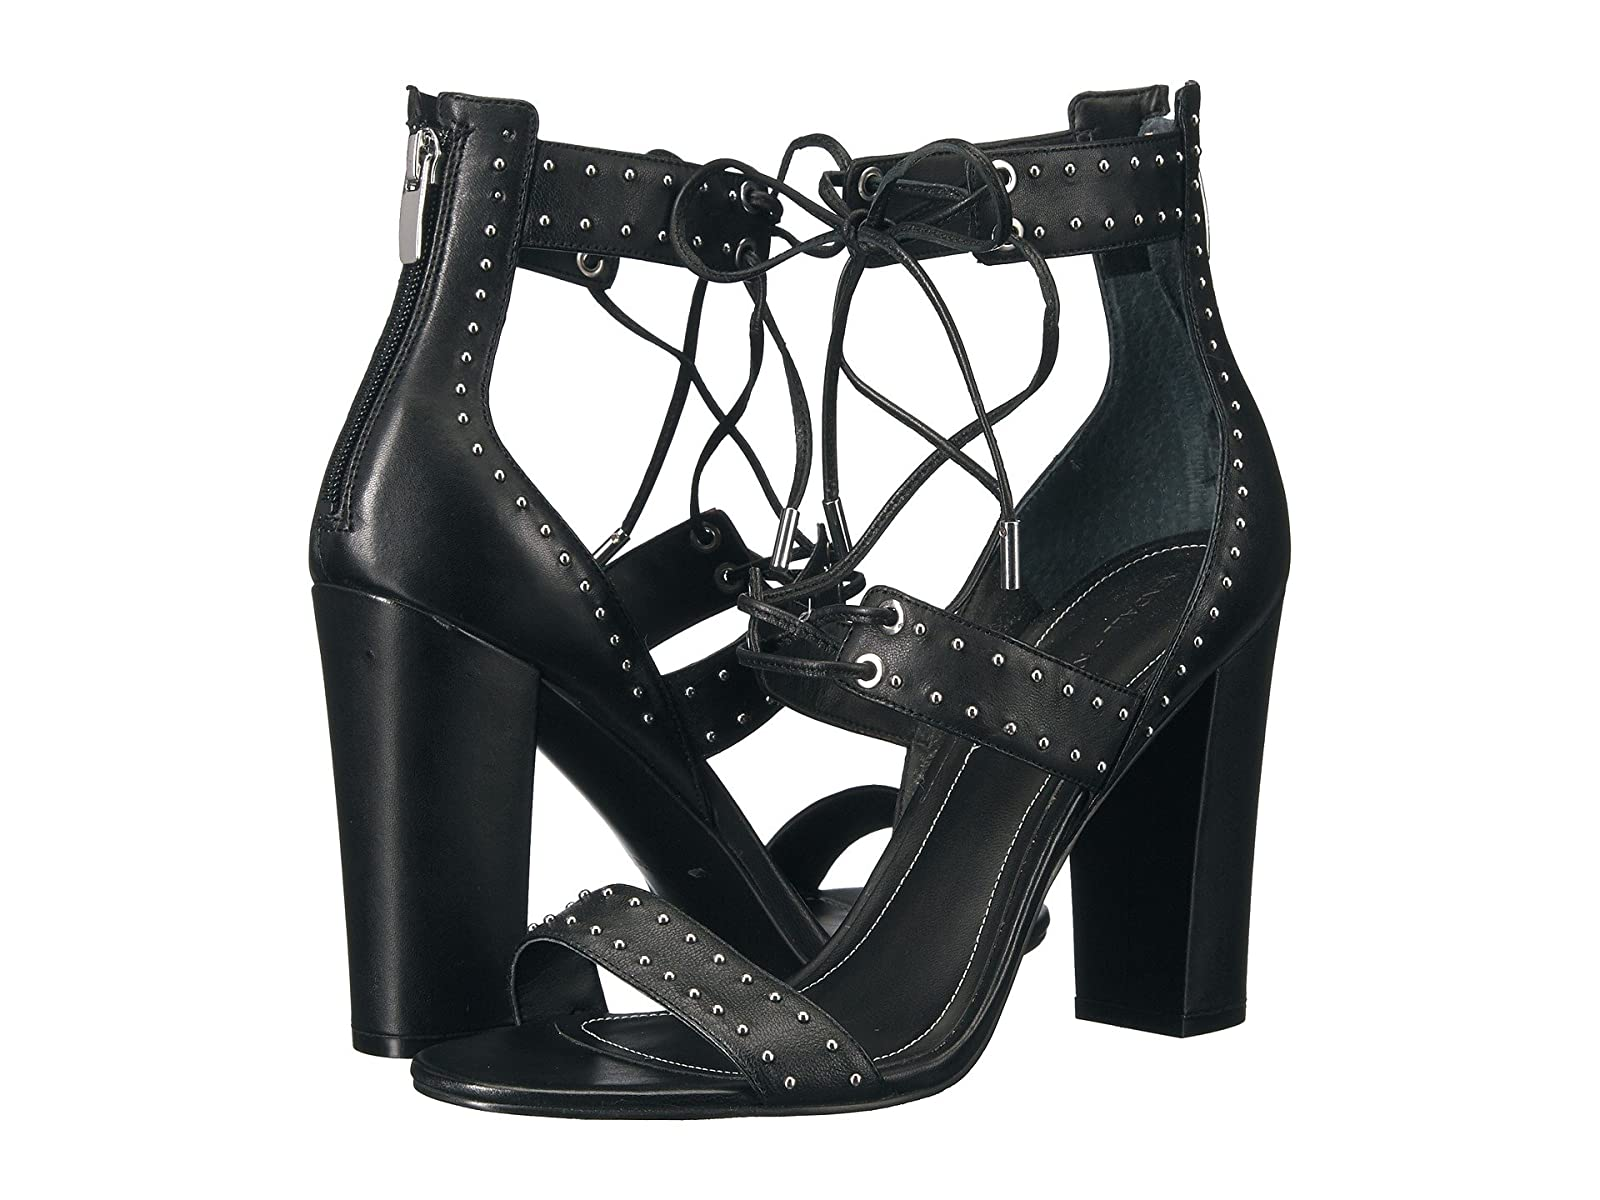 KENDALL + KYLIE DawnCheap and distinctive eye-catching shoes